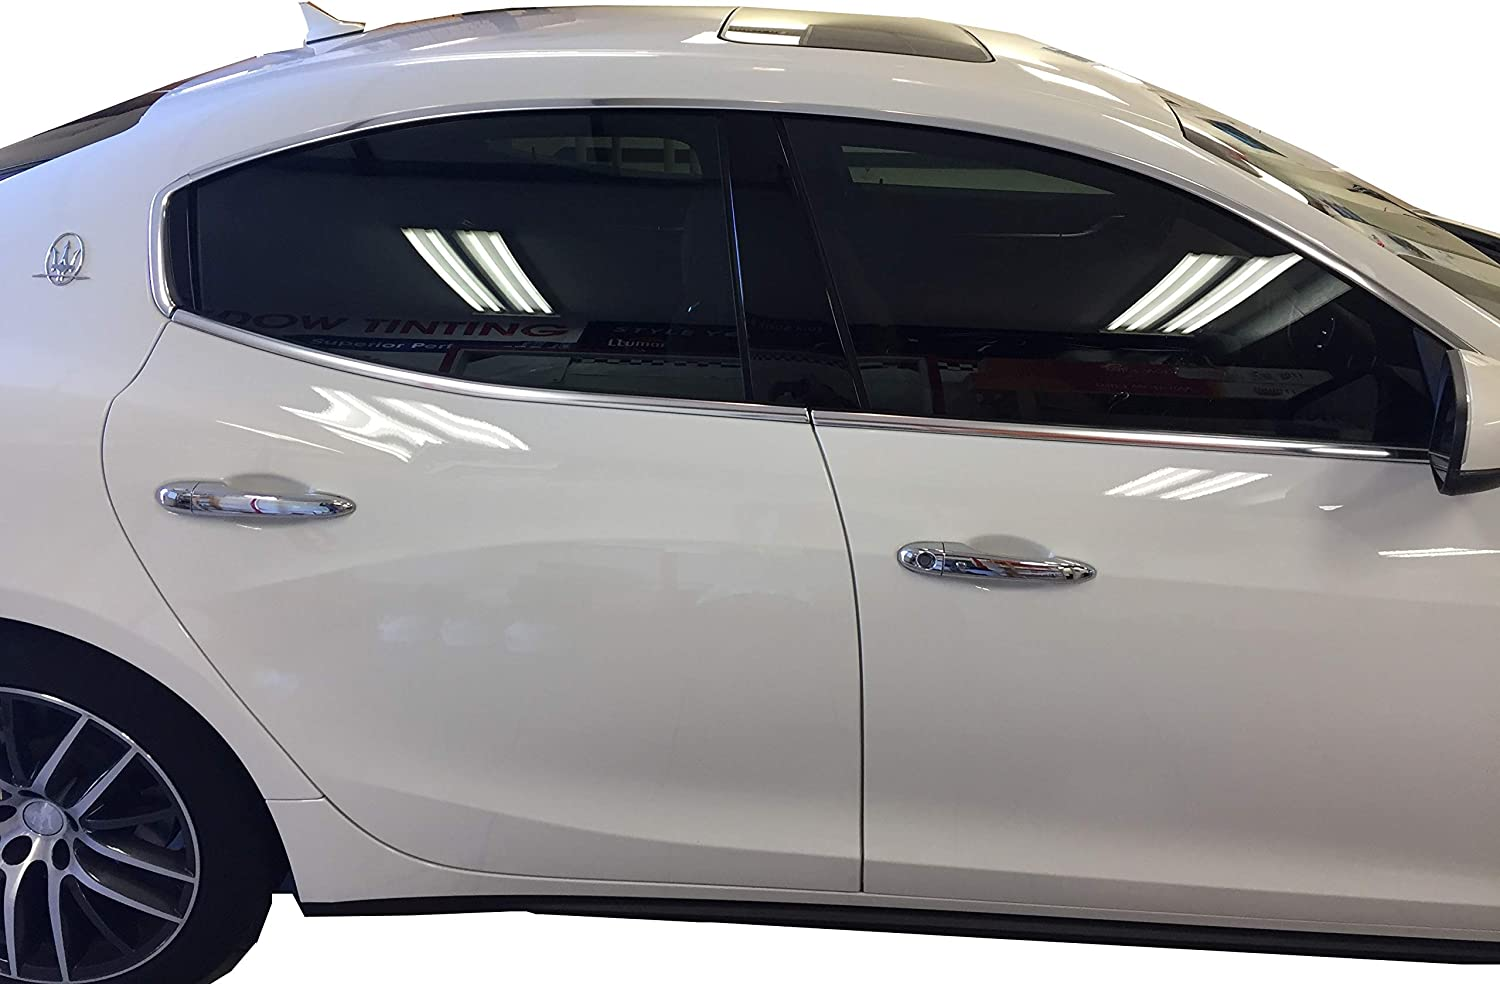 PreCut All Sides /& Rear Window Film Any Tint Shade /% for all BMW 3 series Glass